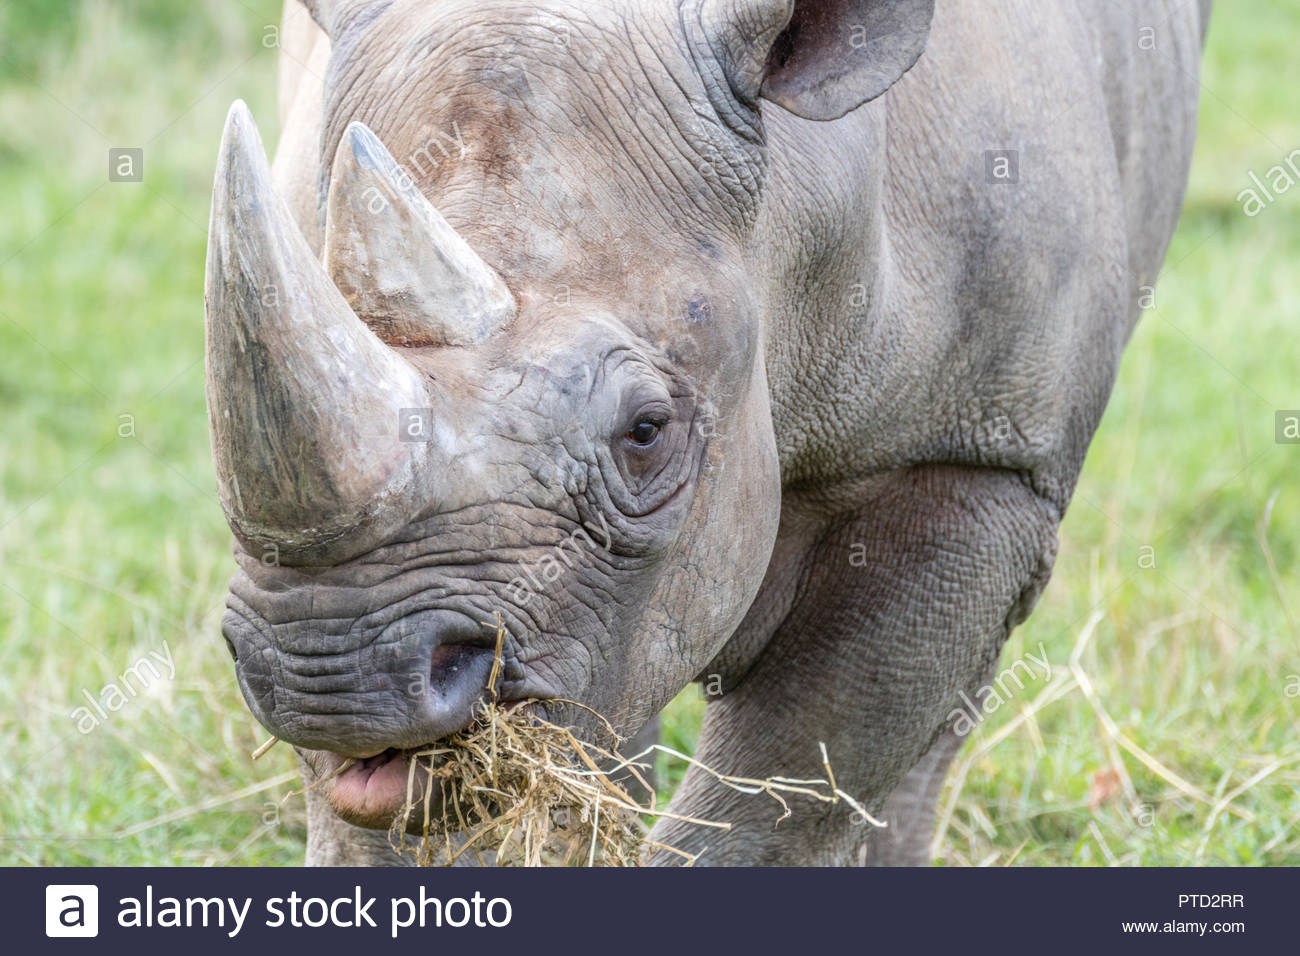 Eastern Black Rhino - Stock Image